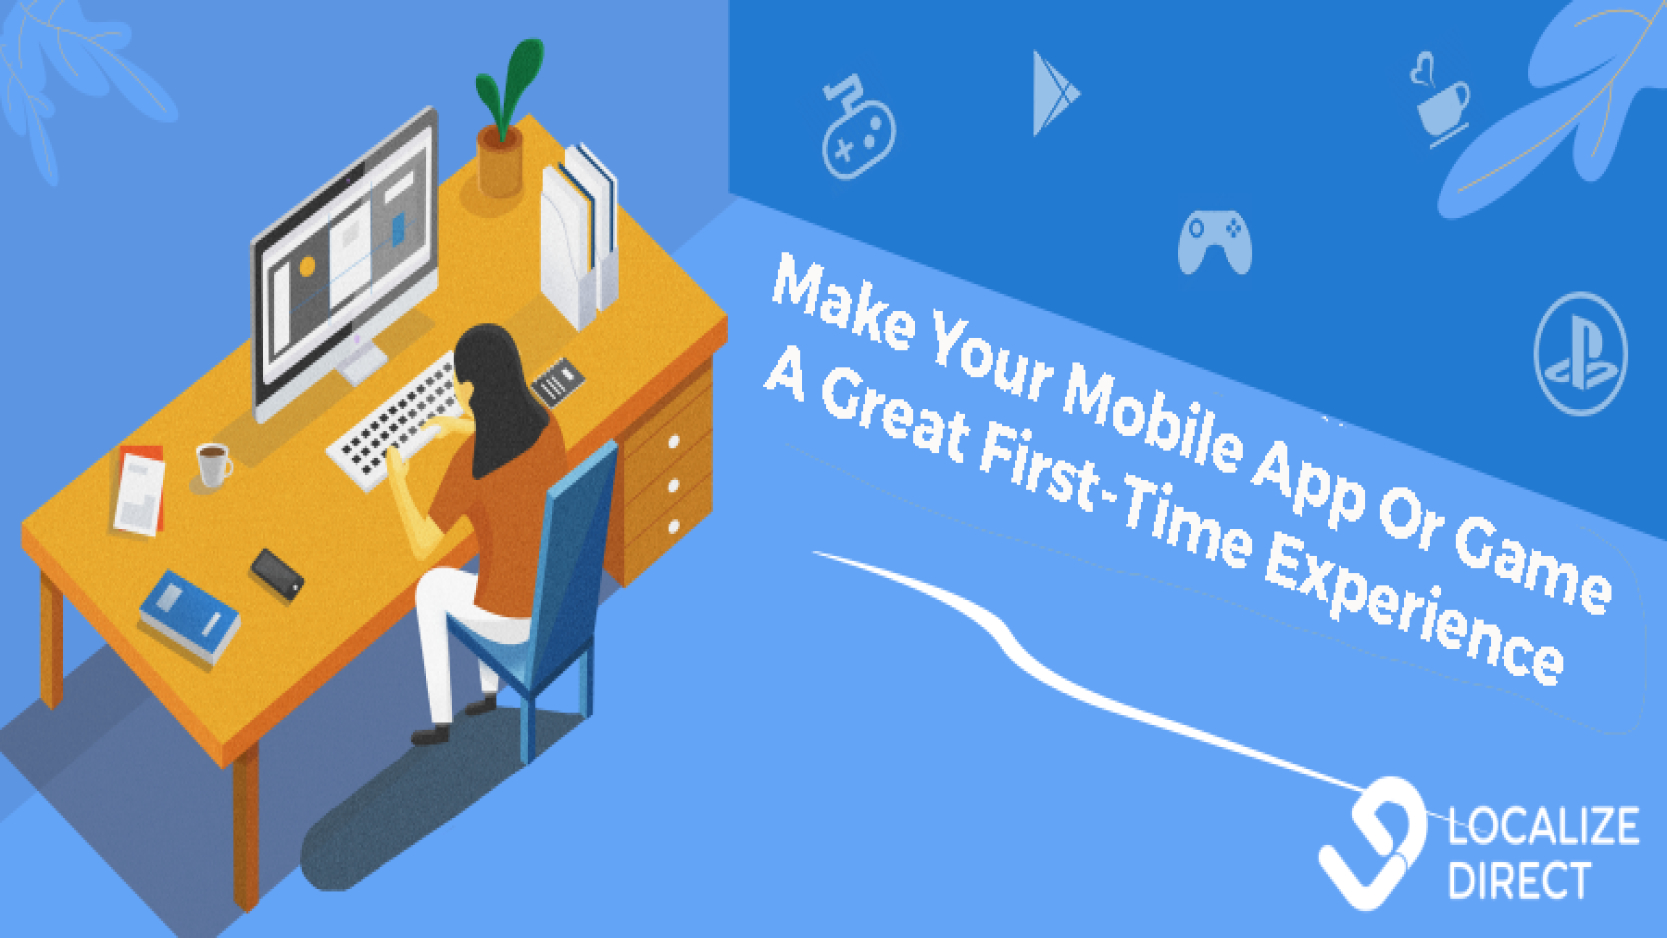 Make Your Mobile App Or Game A Great First-Time Experience